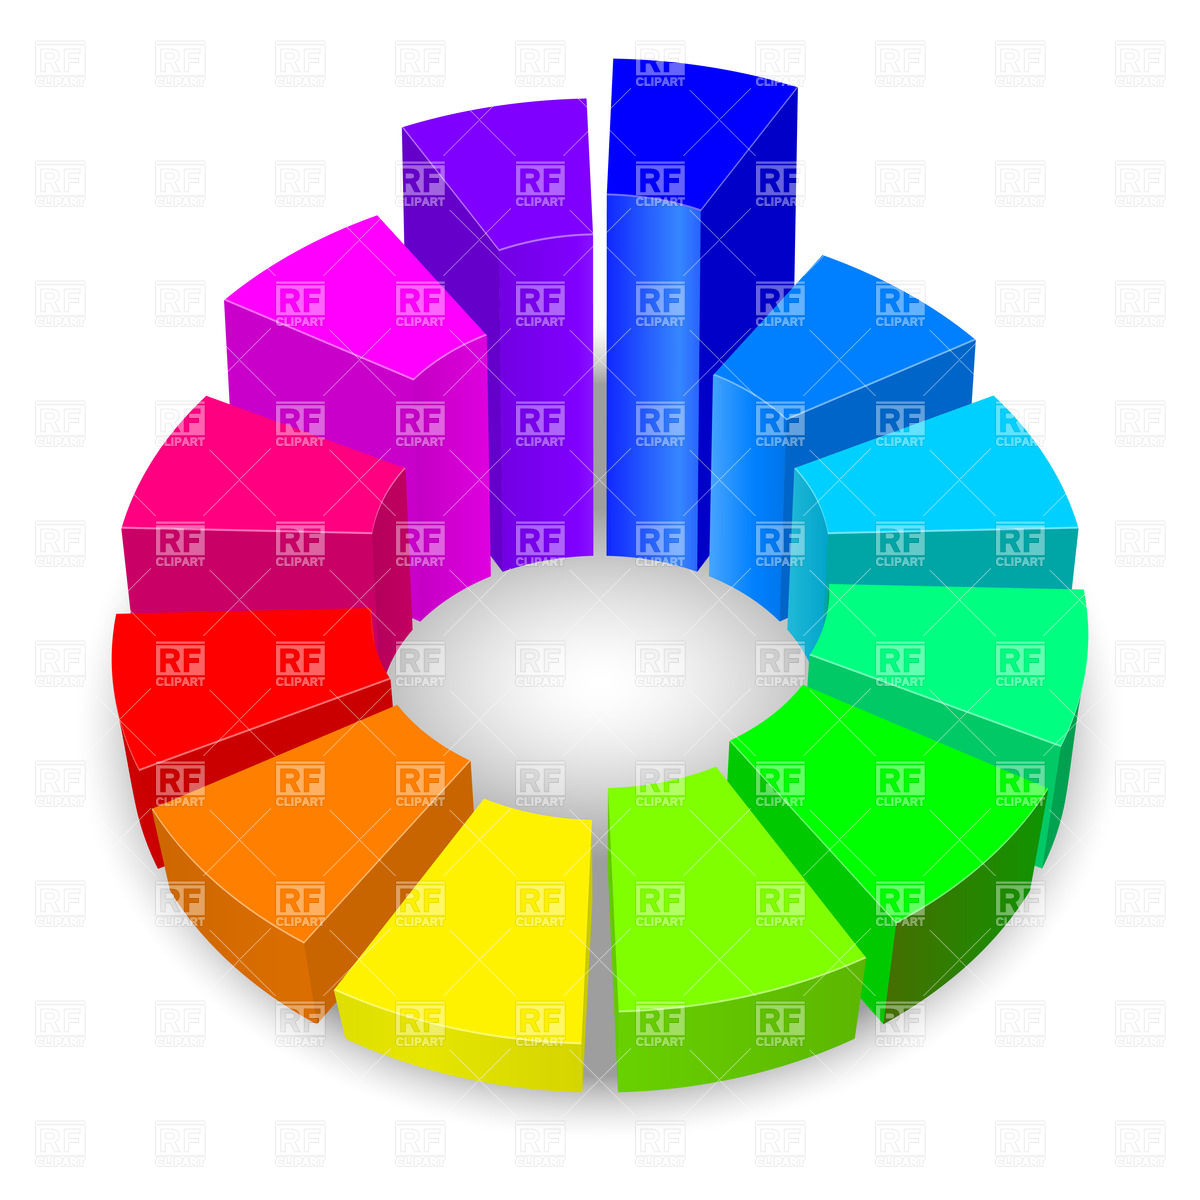 1200x1200 Circular Diagram With Columns In Rainbow Colors Royalty Free